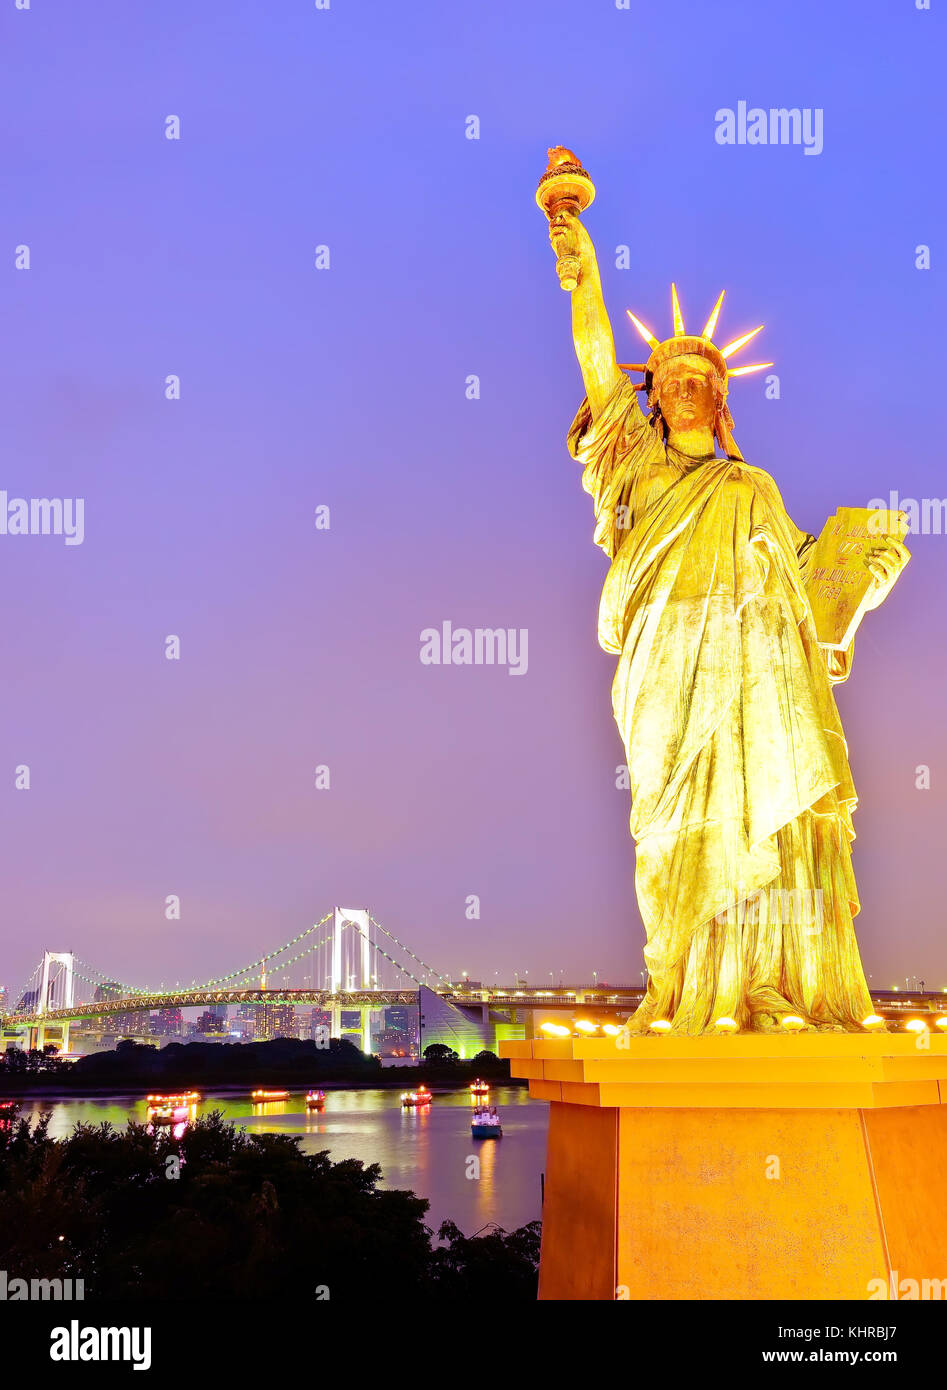 Statue Of Liberty Construction Stock Photos & Statue Of ...